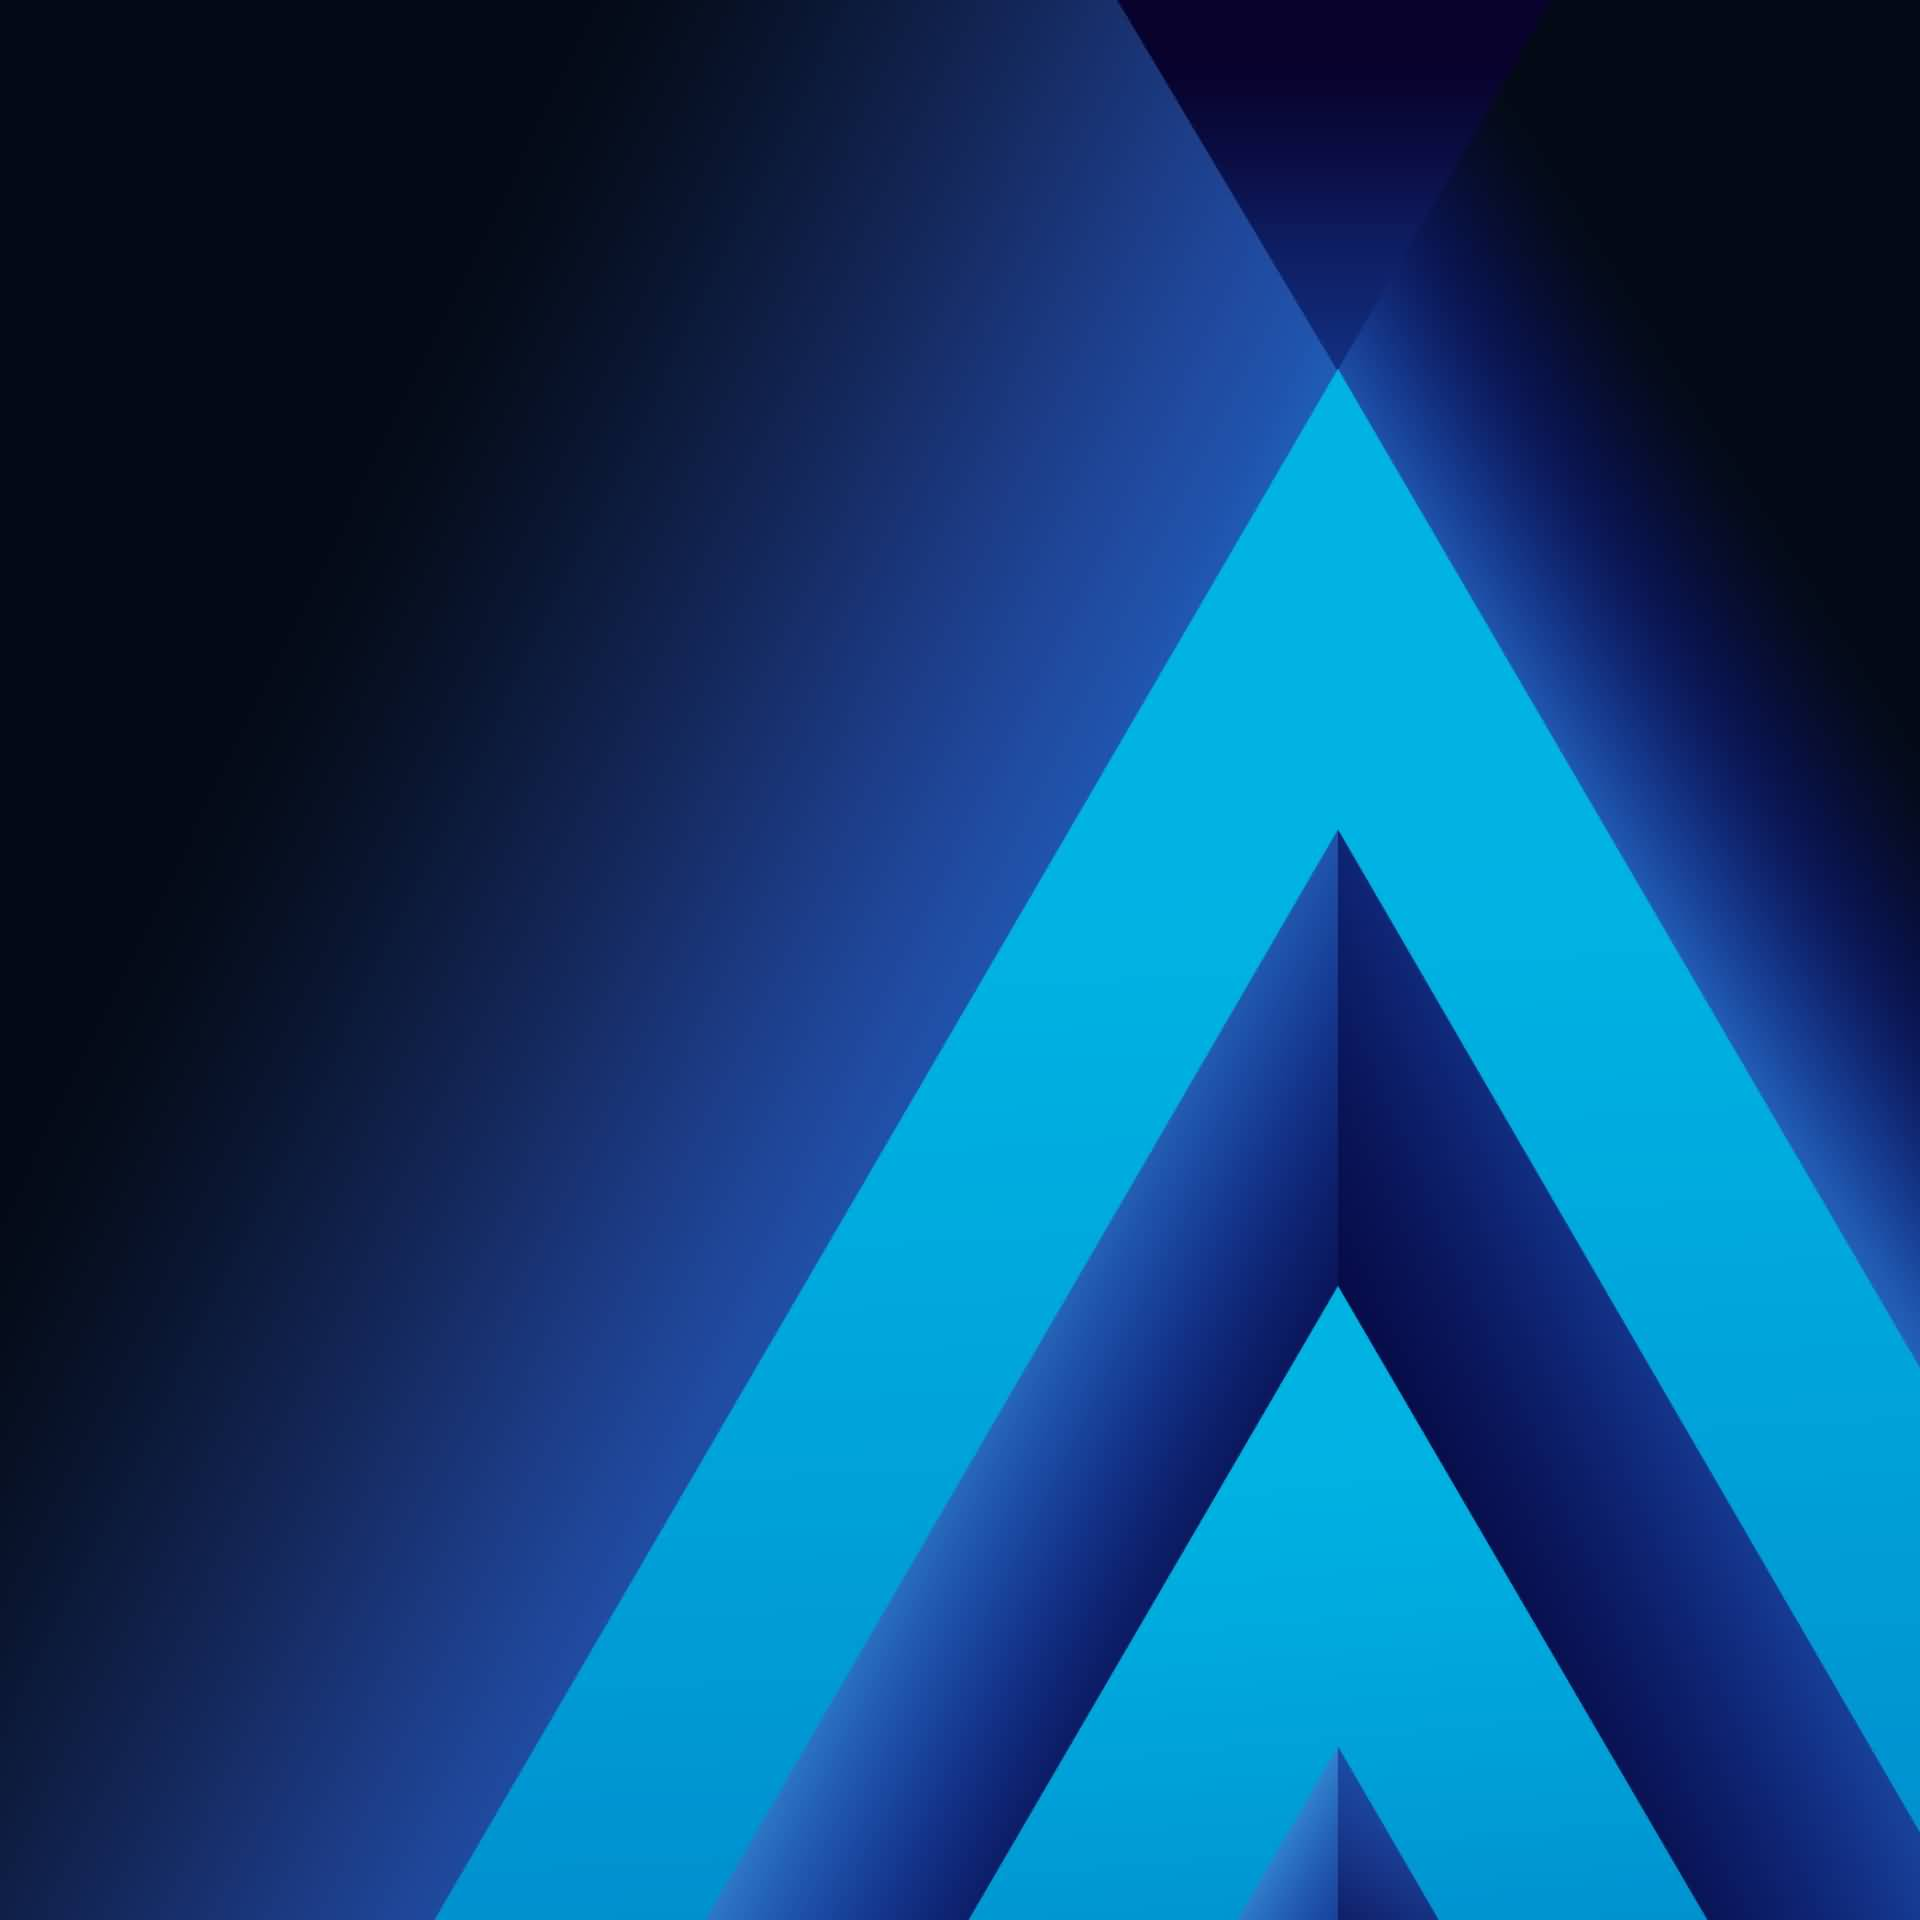 Samsung galaxy a5 wallpaper hd 1080p